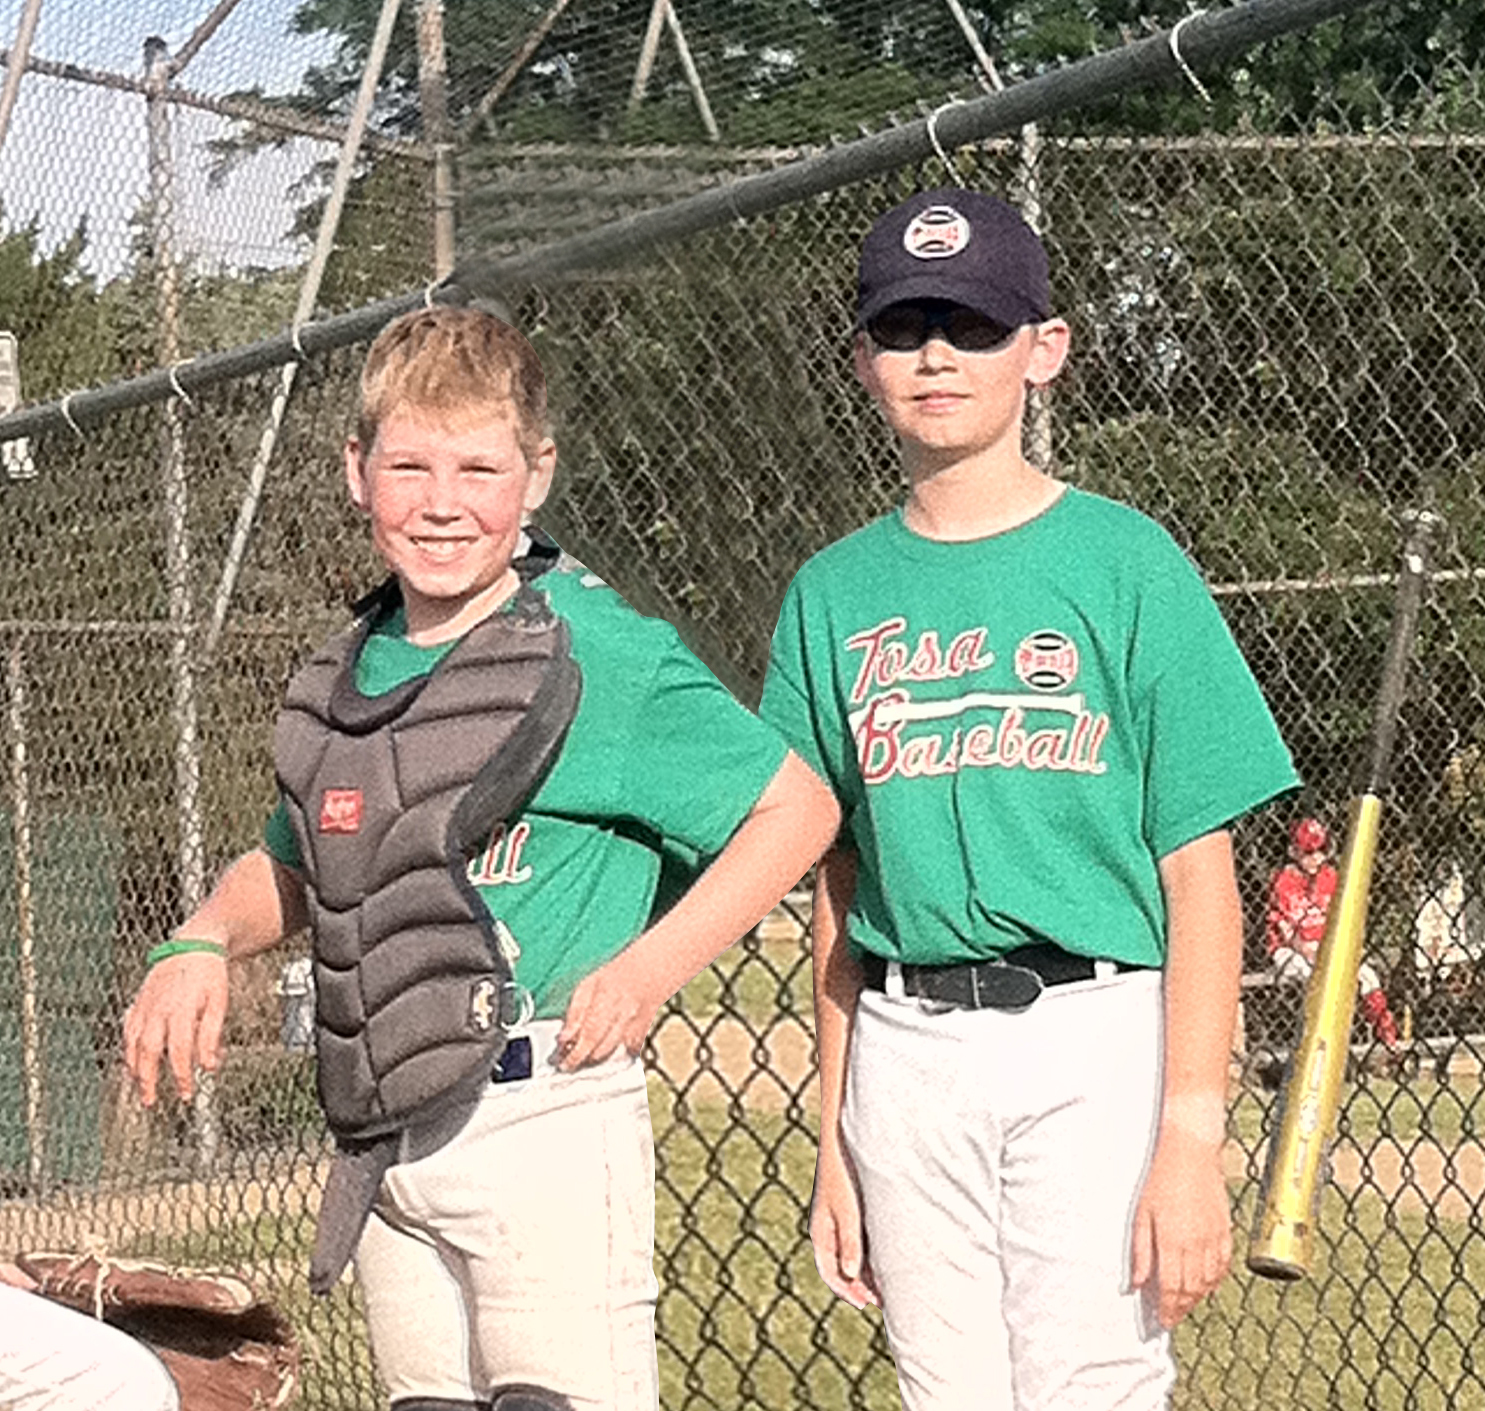 Proud sponsor of the Wauwatosa Baseball League   - 2006 to present